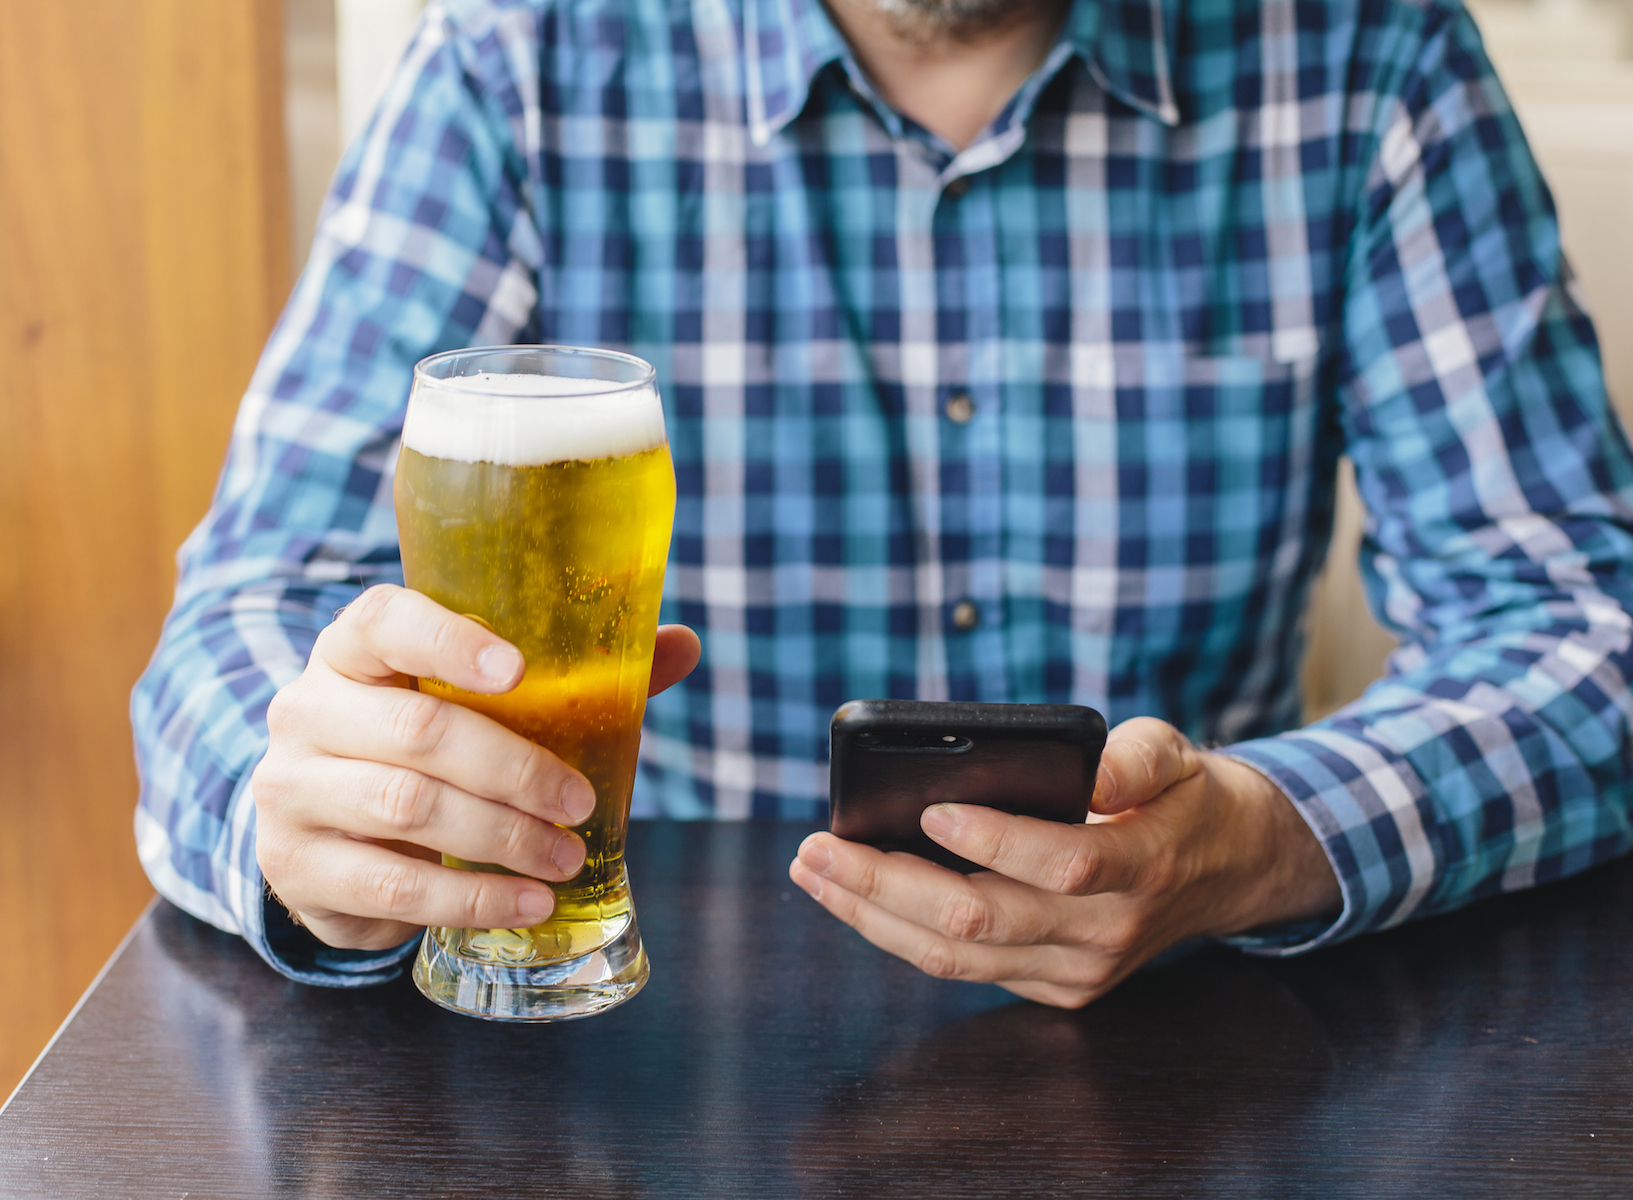 This App Offers Free Beer Just for Rating Breweries